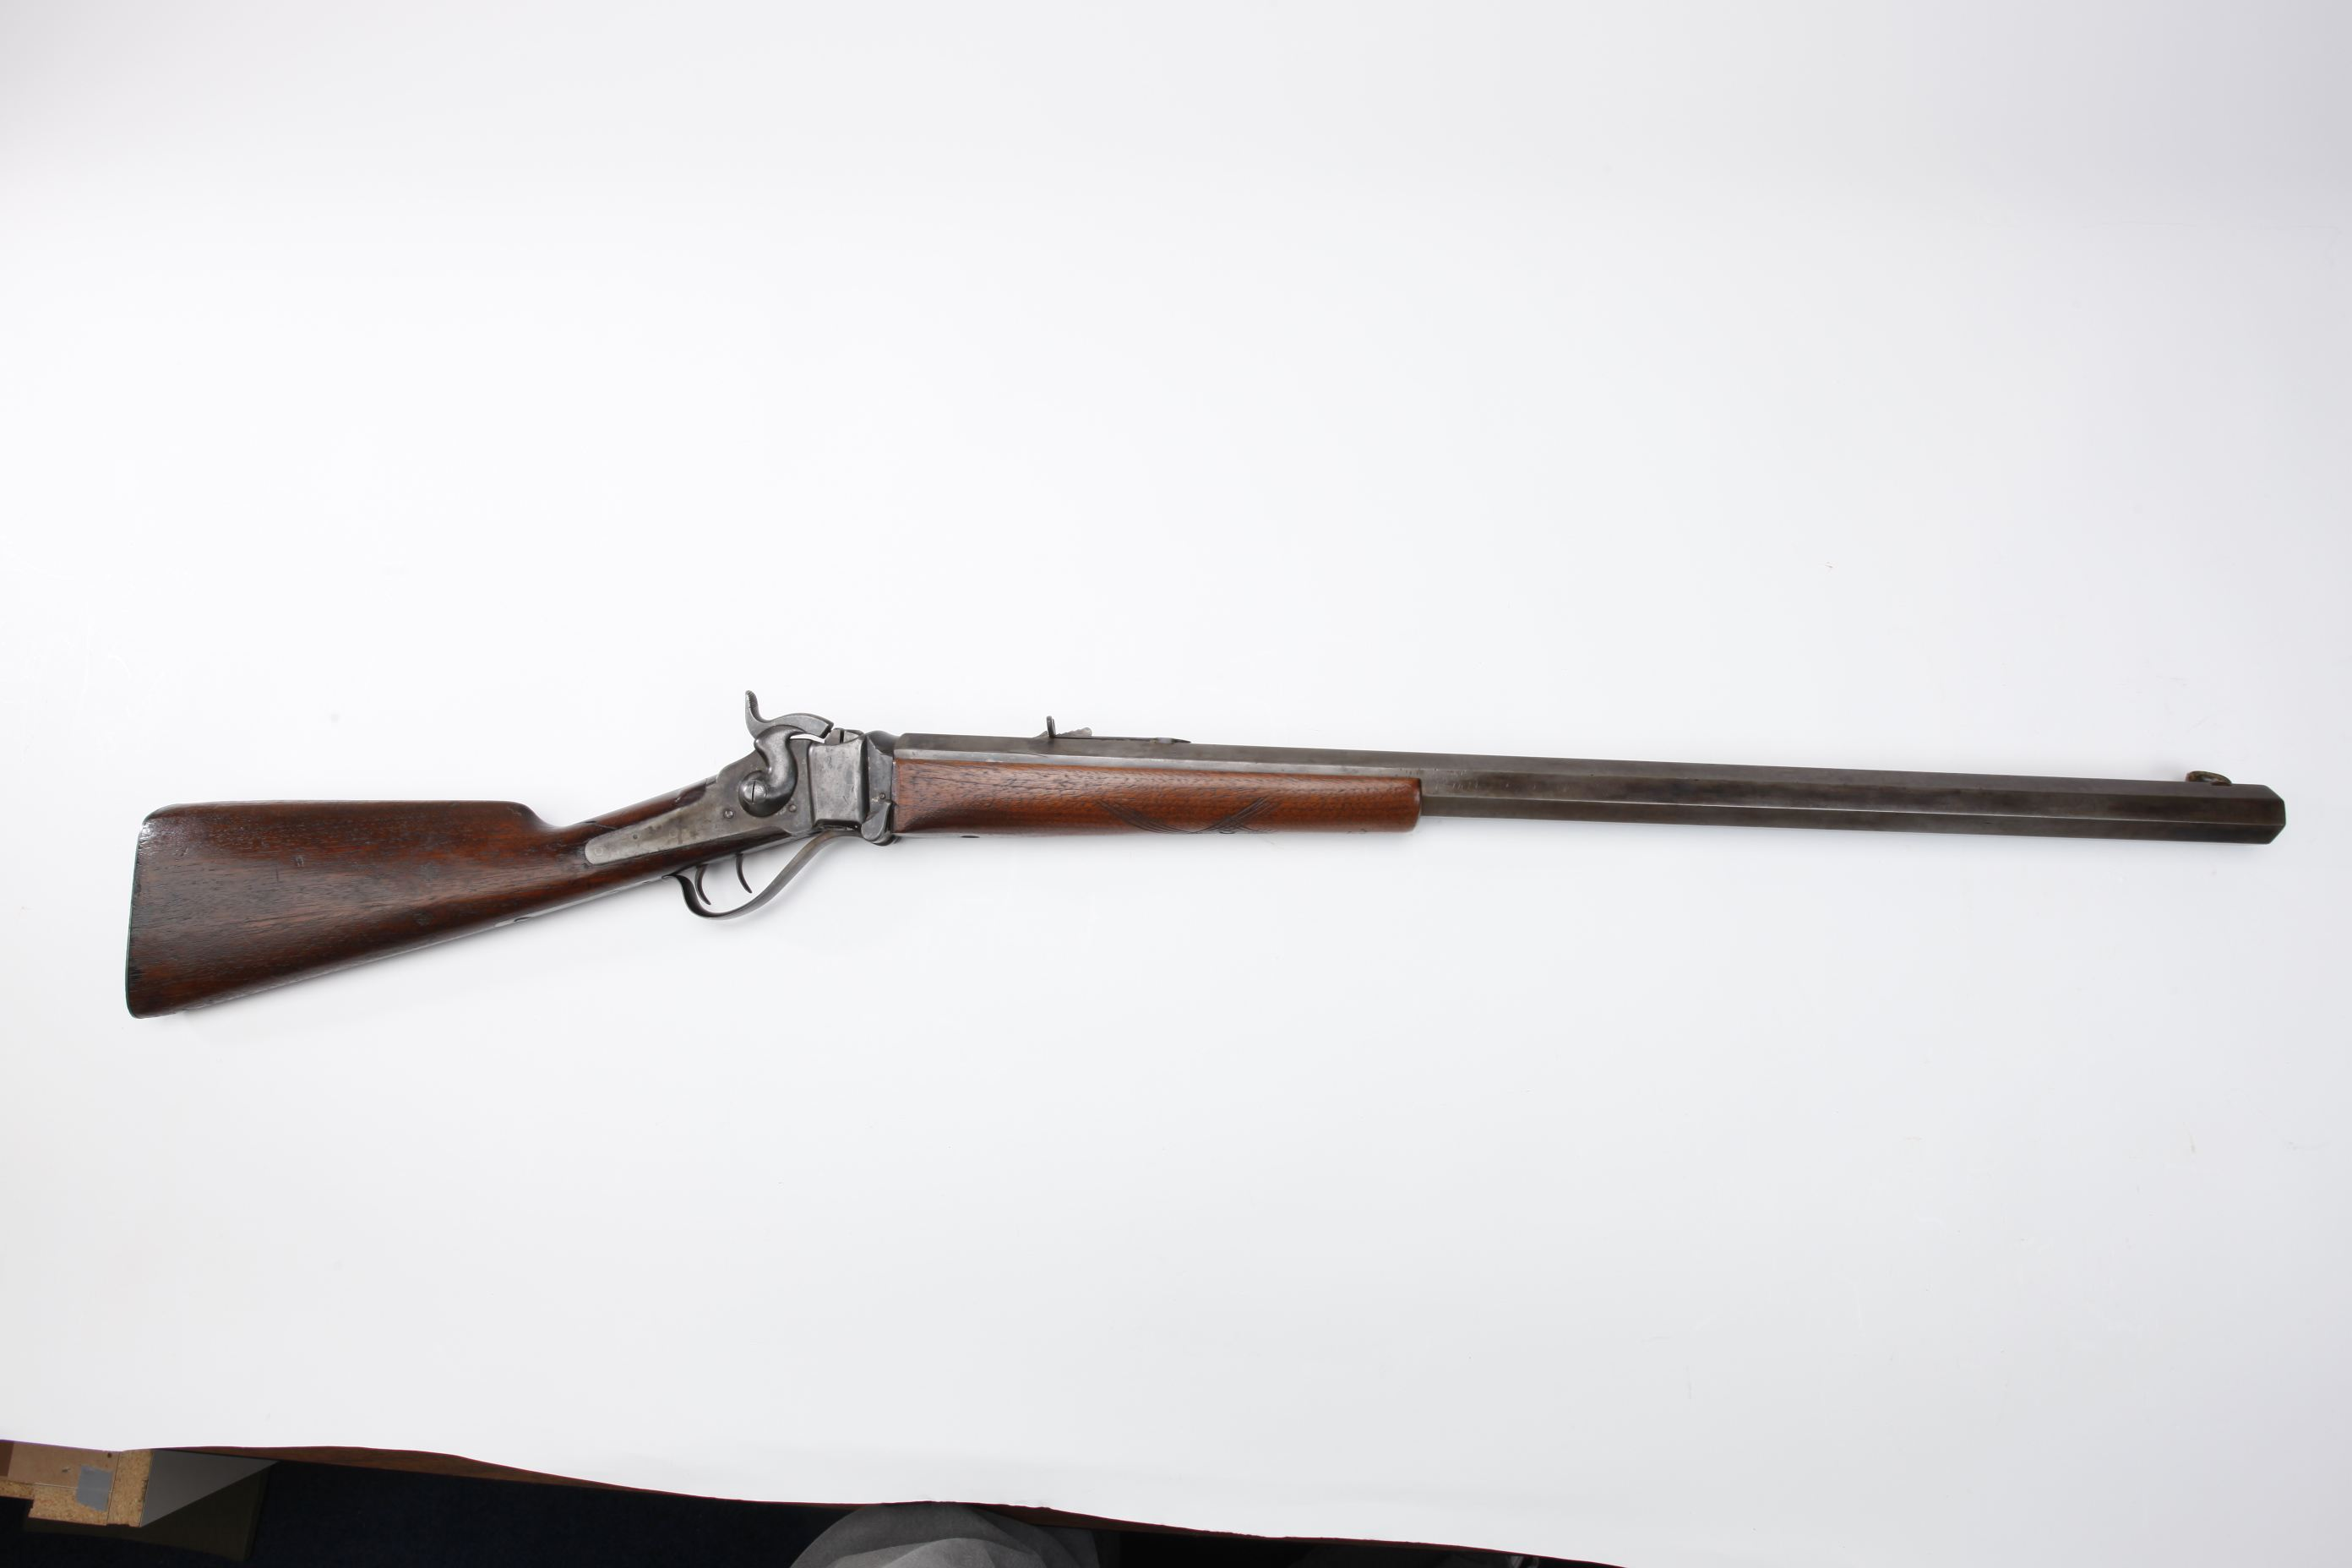 Sharps Model 1874 Old Reliable Single Shot Falling Block Rifle